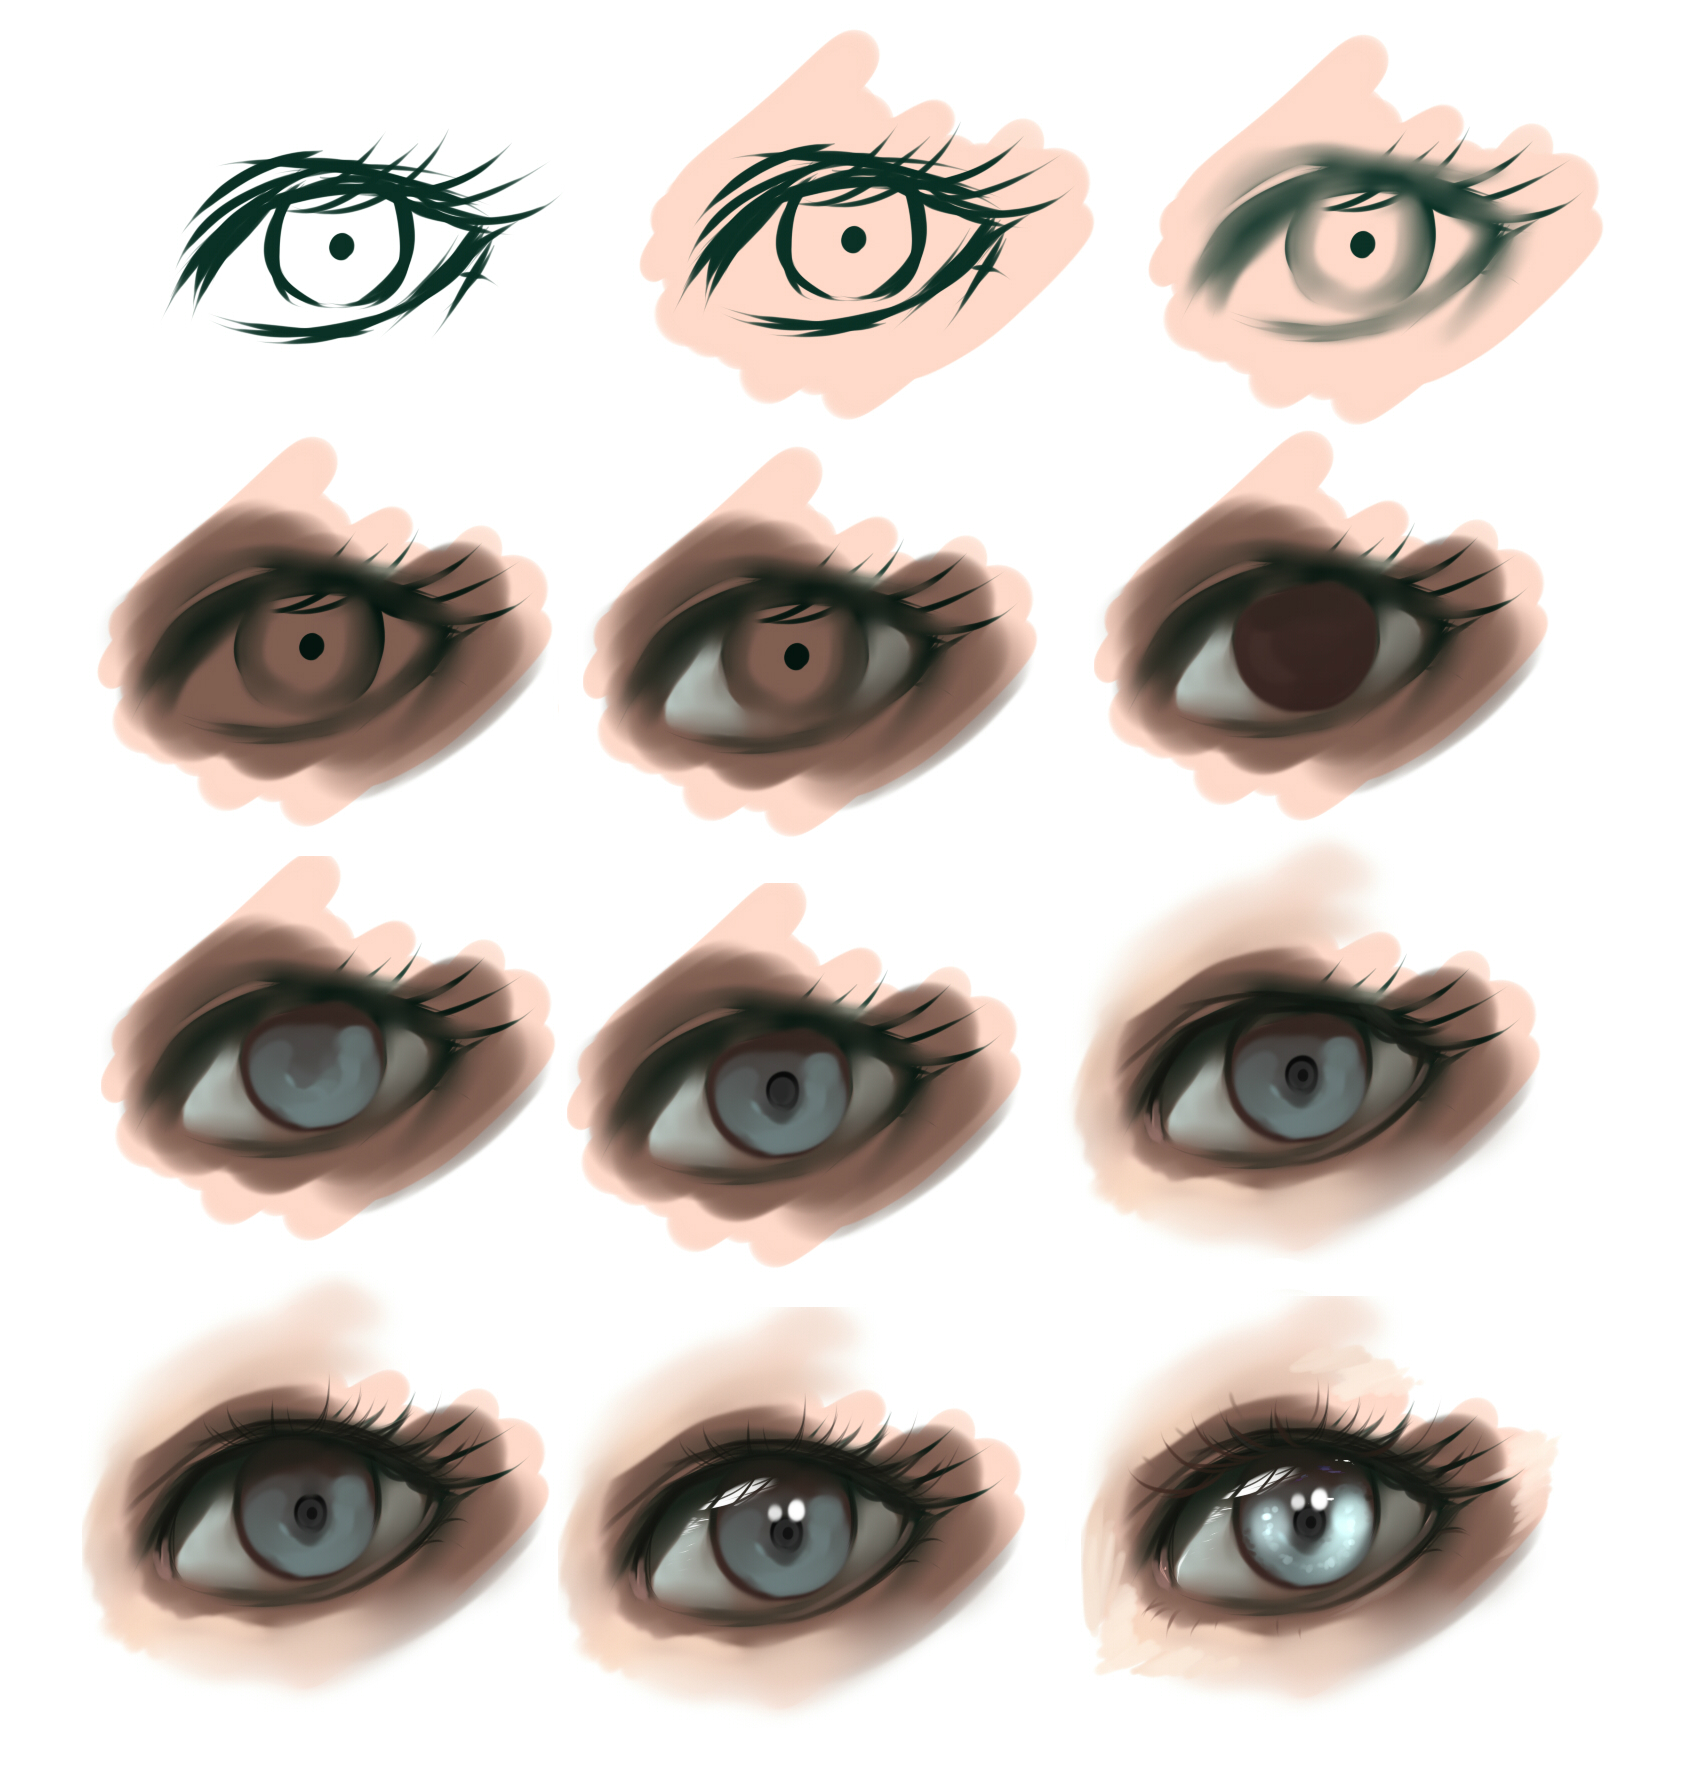 Paint tool sai eyes tutorial by ryky on deviantart eye step by step by ryky ccuart Images